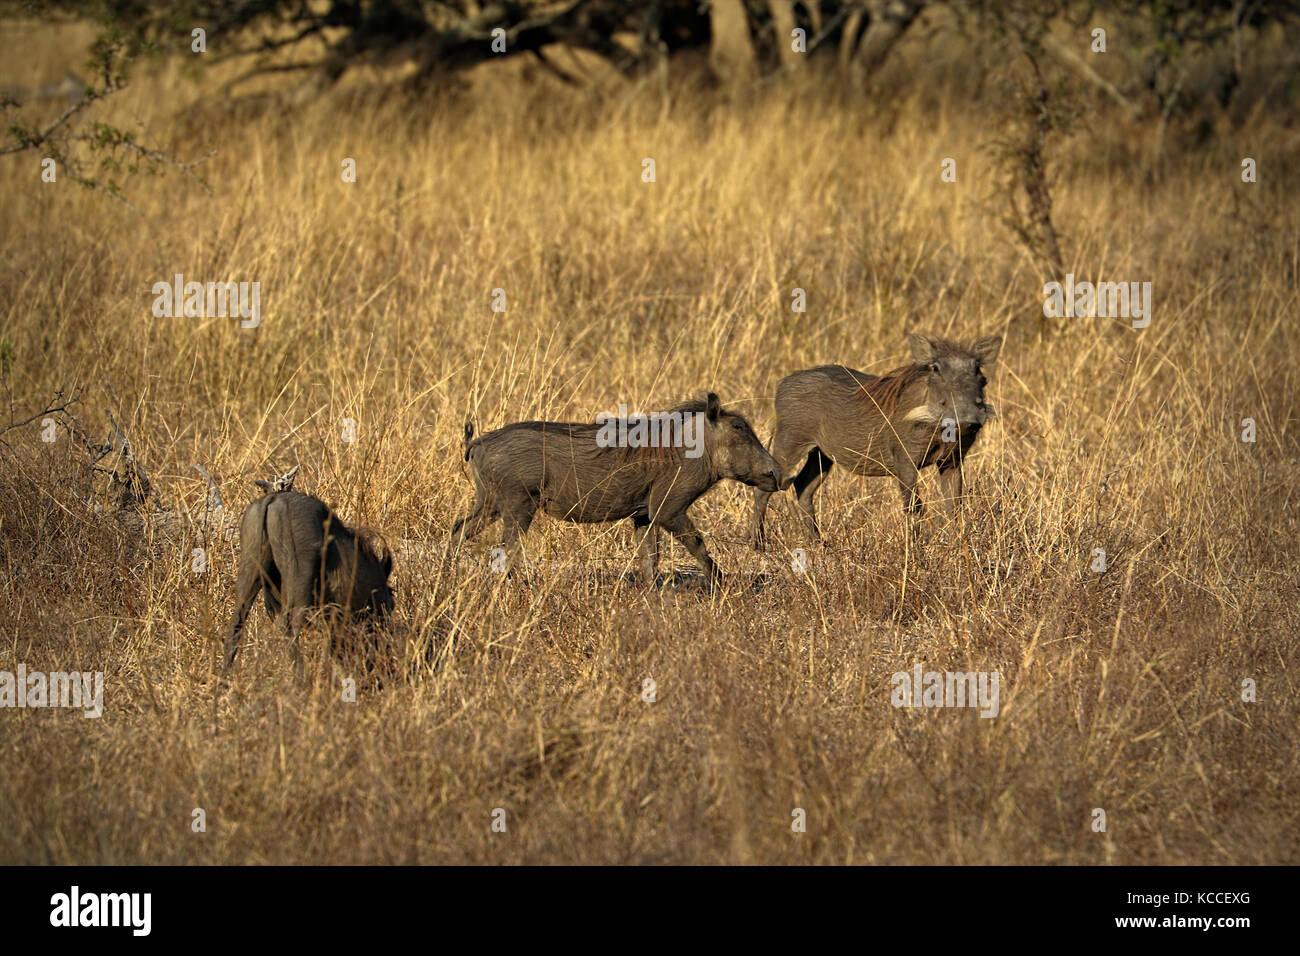 Warthogs, wild member of the pig family, in the Kruger National Park, South Africa - Stock Image